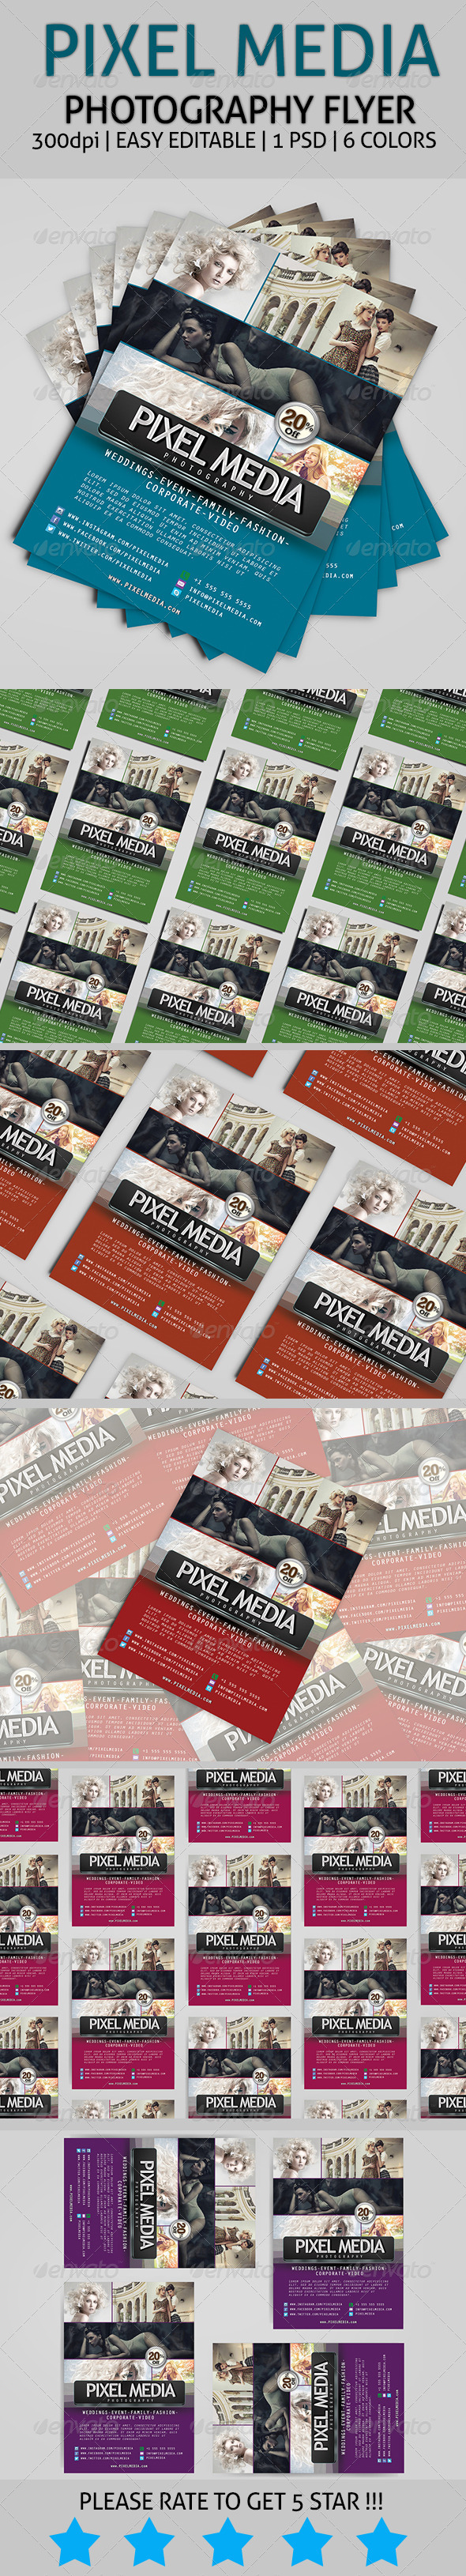 Pixel Media - Photography Flyer